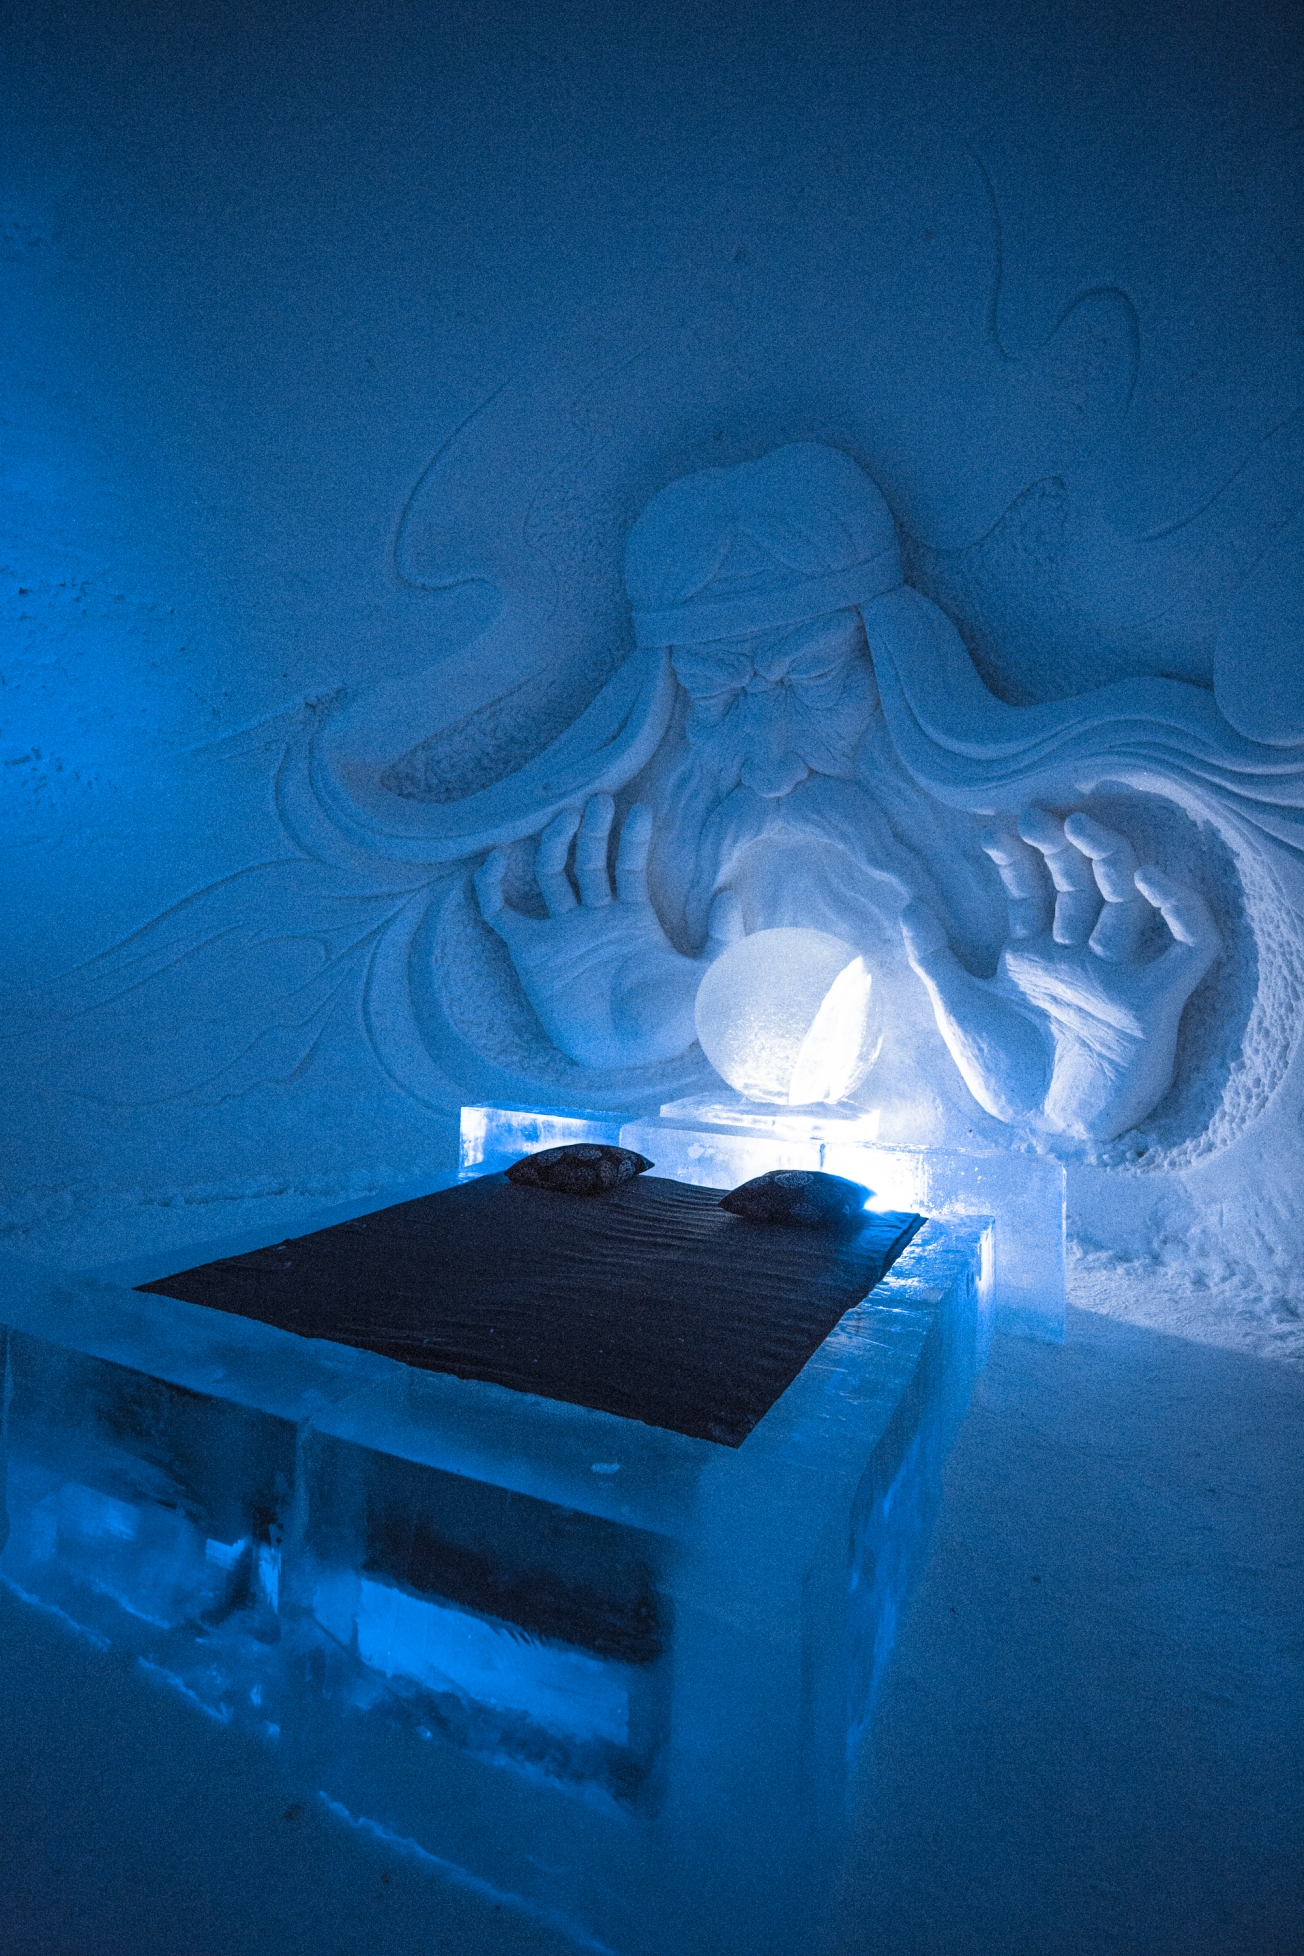 snowvillage games of thrones 2017 2018 fortuneteller1 1304x9999 - There is a Game of Thrones Snow Hotel in Finland